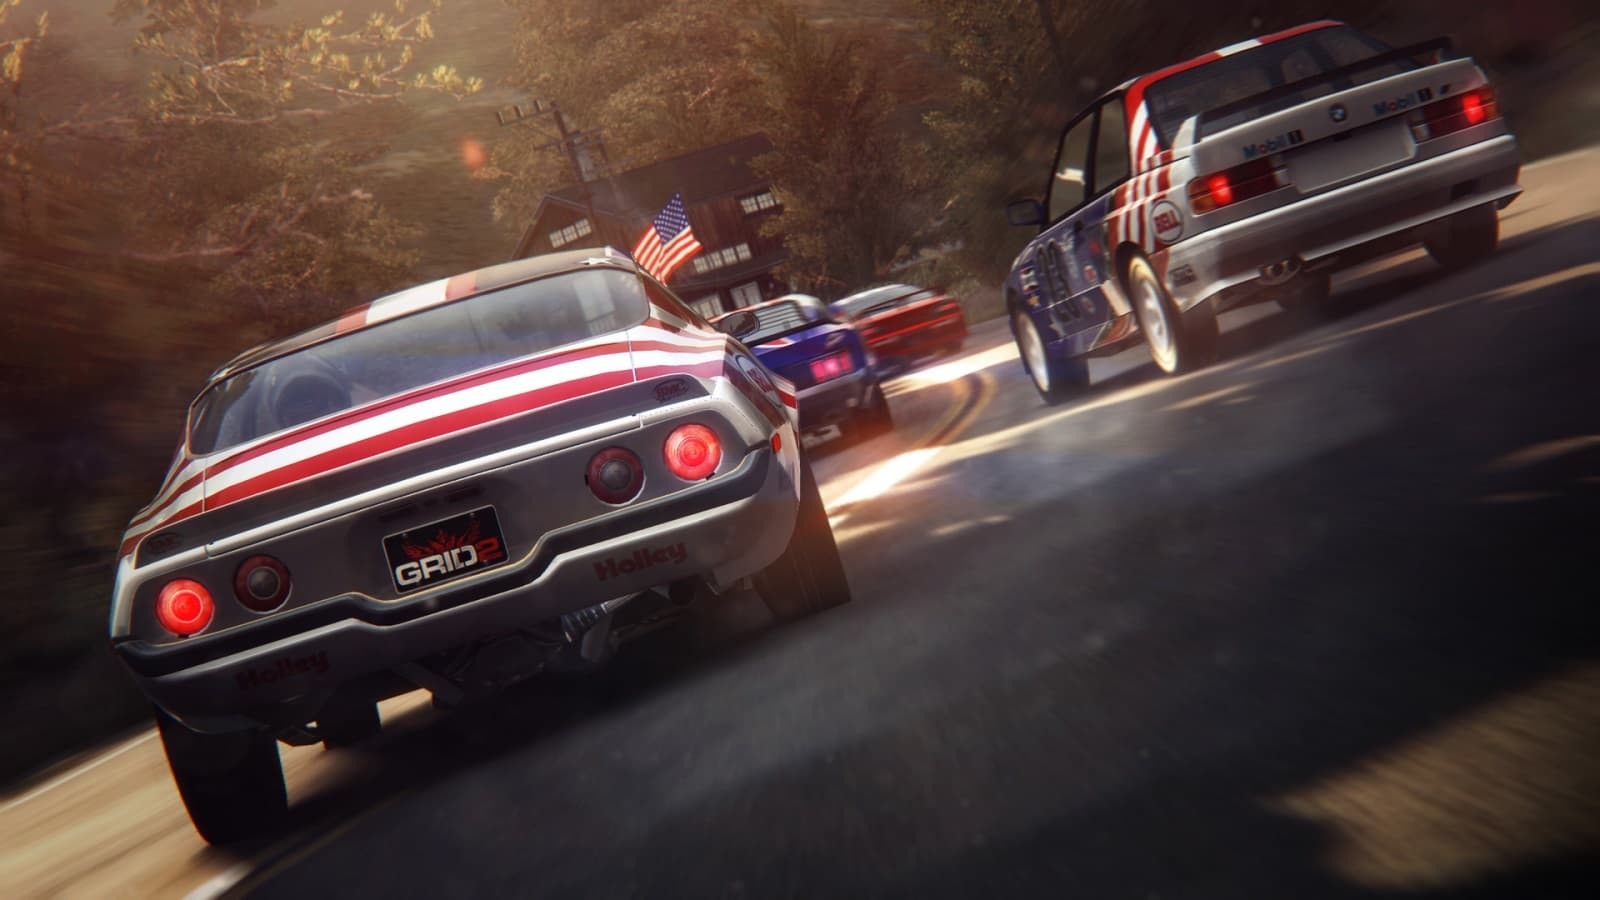 grid 2 free on steam